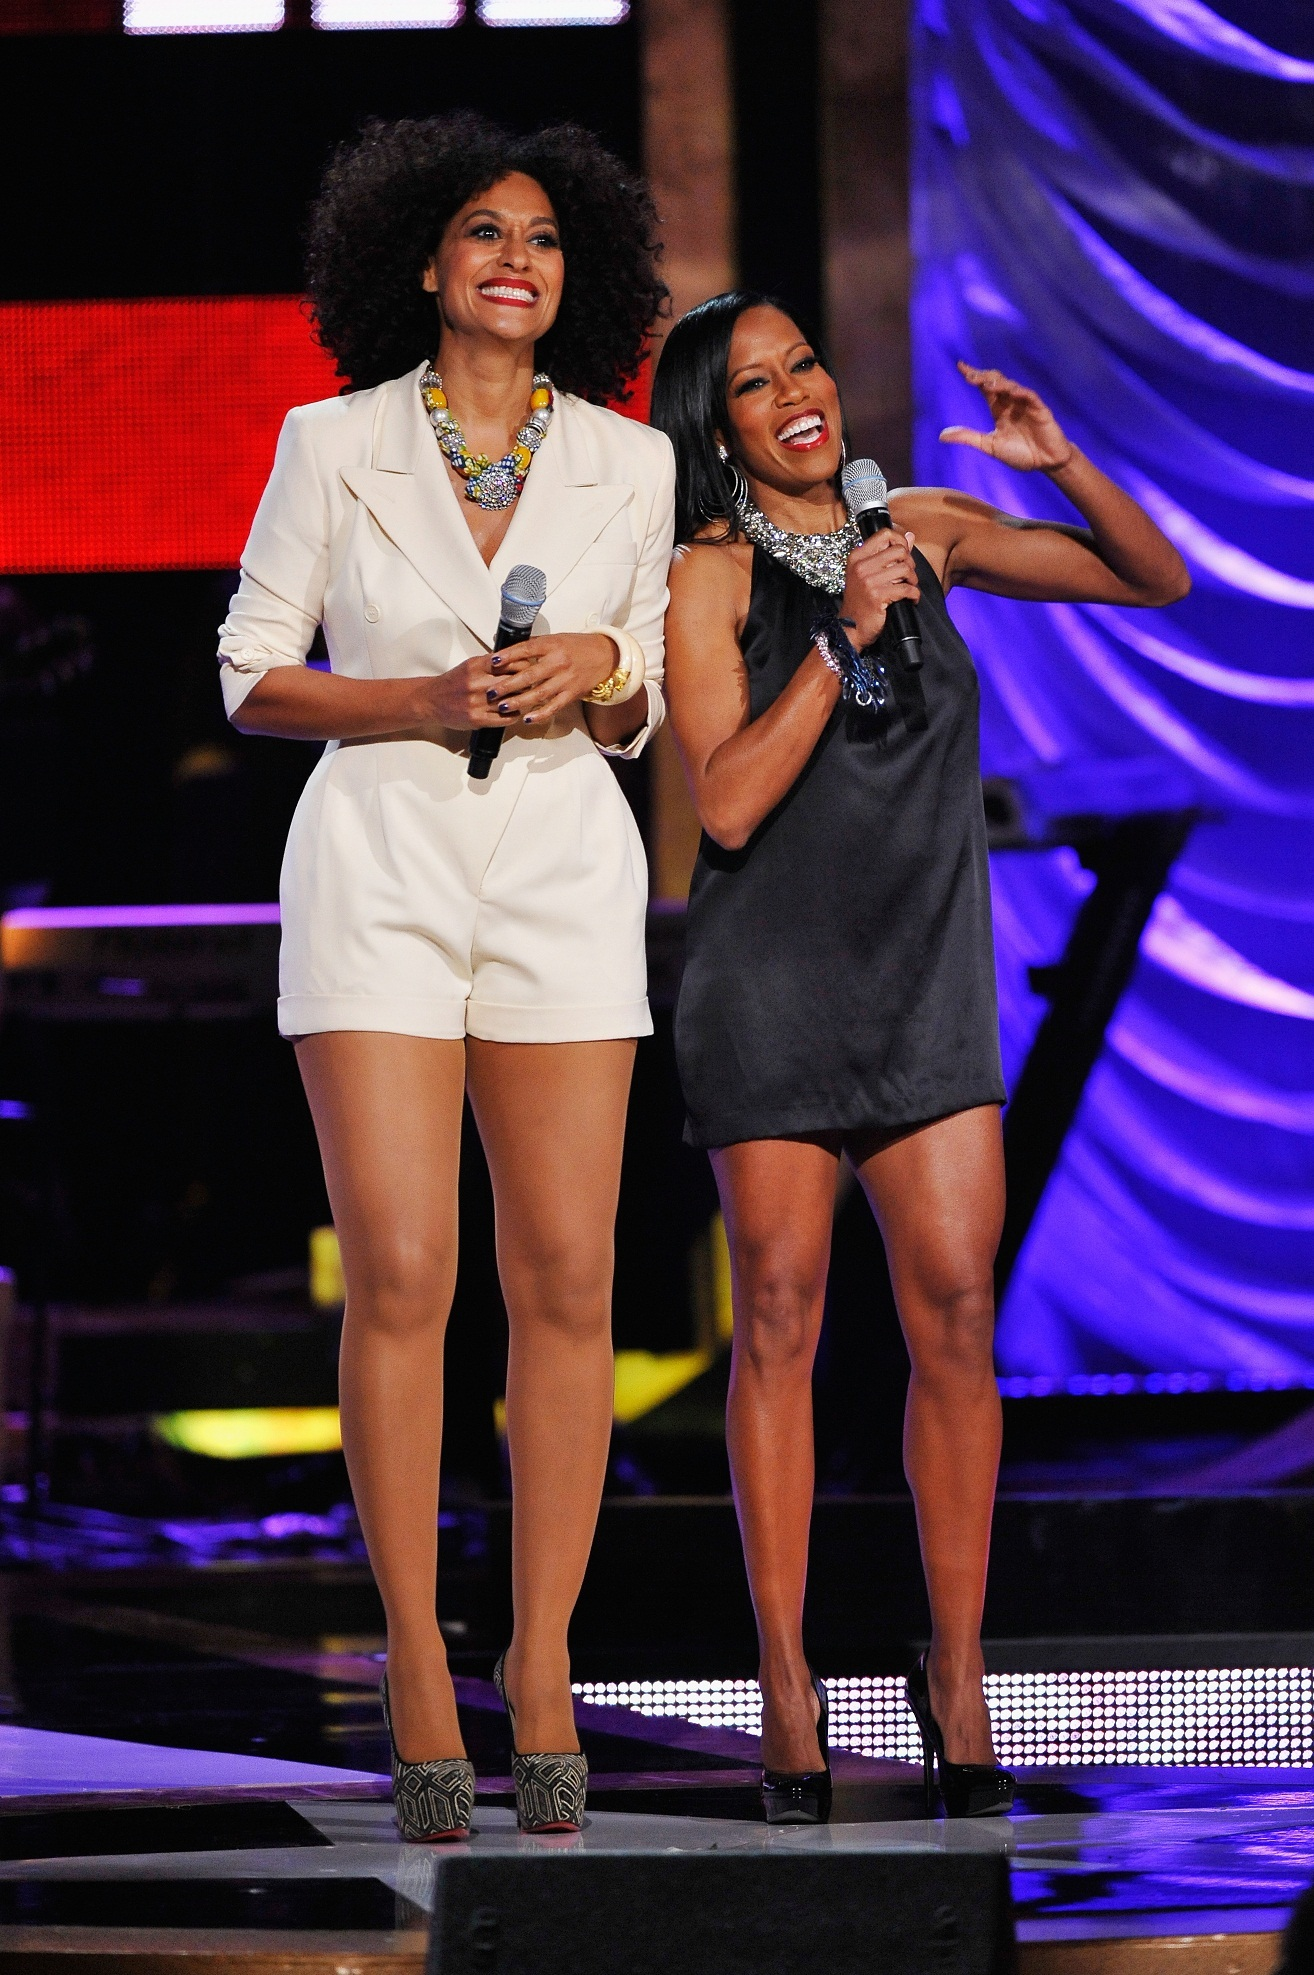 One of hosts Tracee Ellis Ross and Regina Kings outfit changes